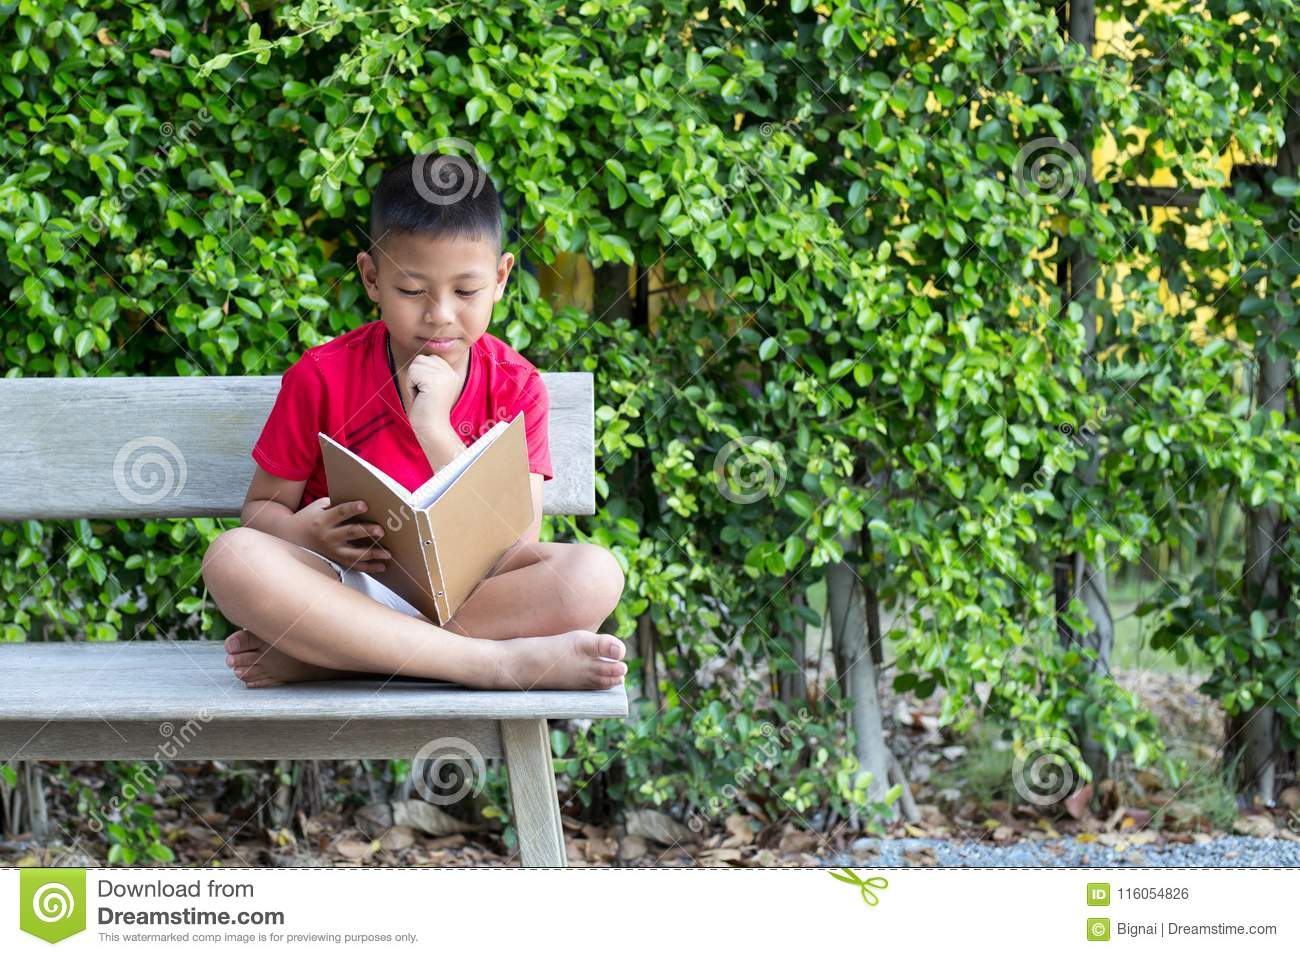 Swell Little Boy Sitting On Wooden Bench Hand On His Chin Reading Ocoug Best Dining Table And Chair Ideas Images Ocougorg